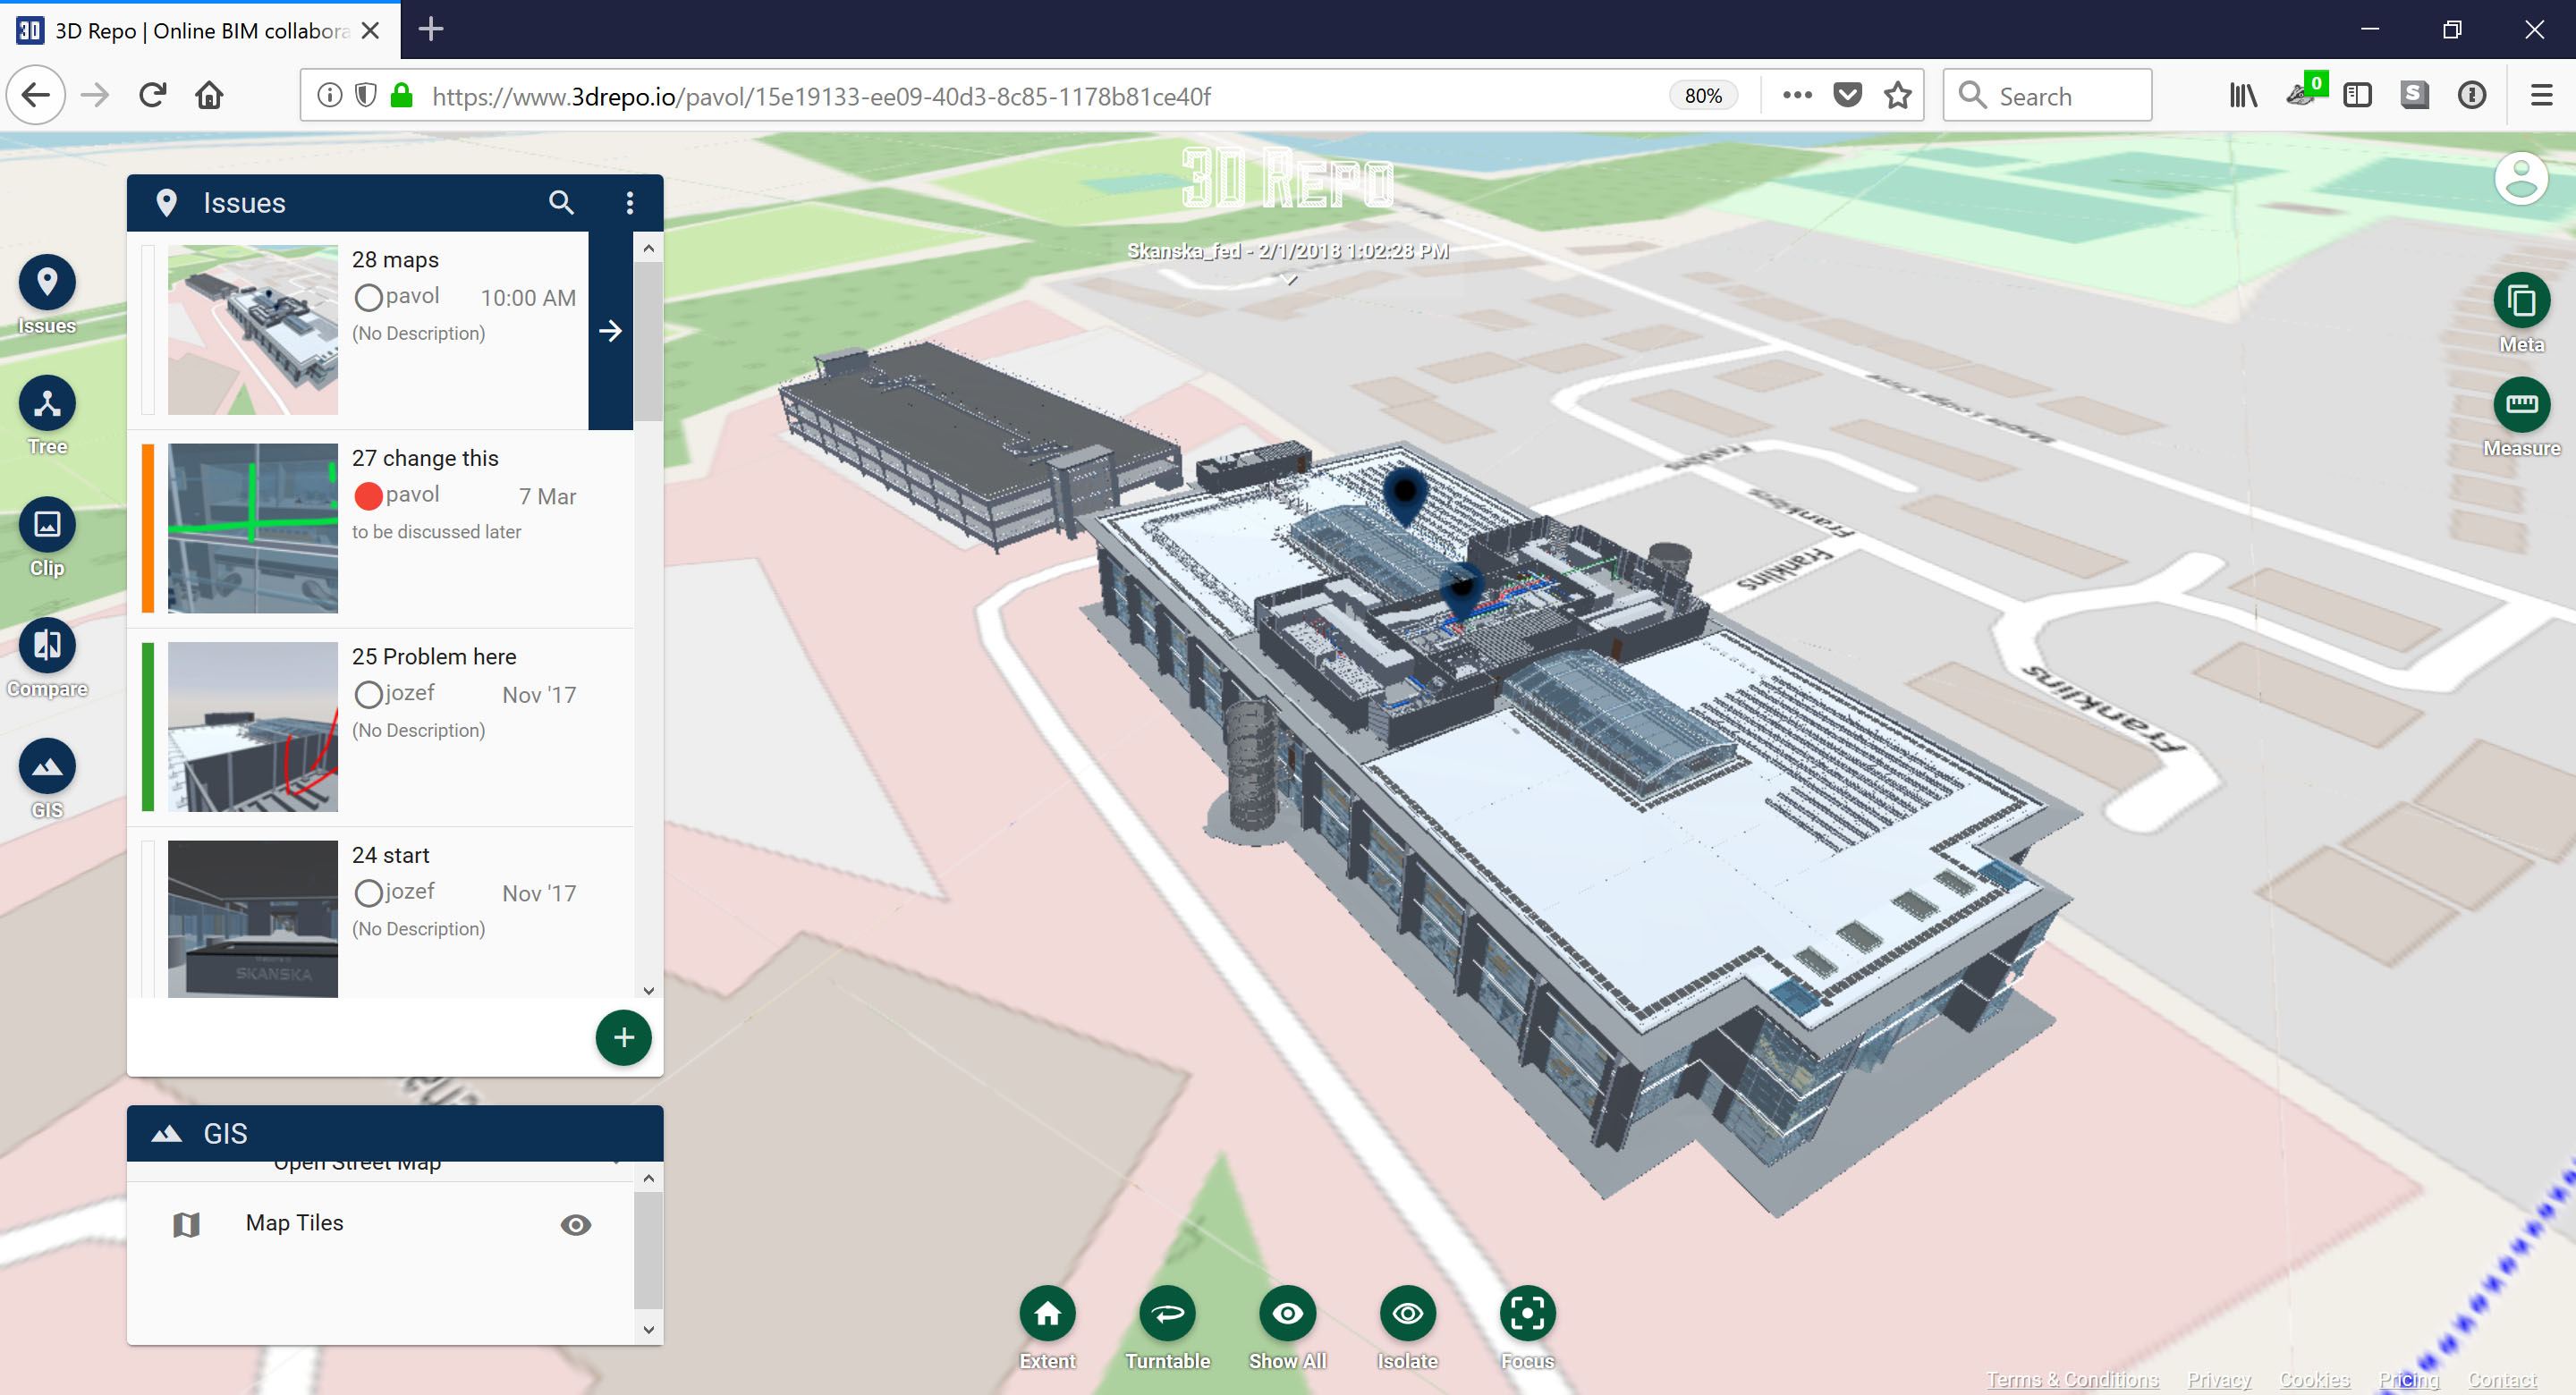 New 3D Repo version adds the BCF support and GIS integration